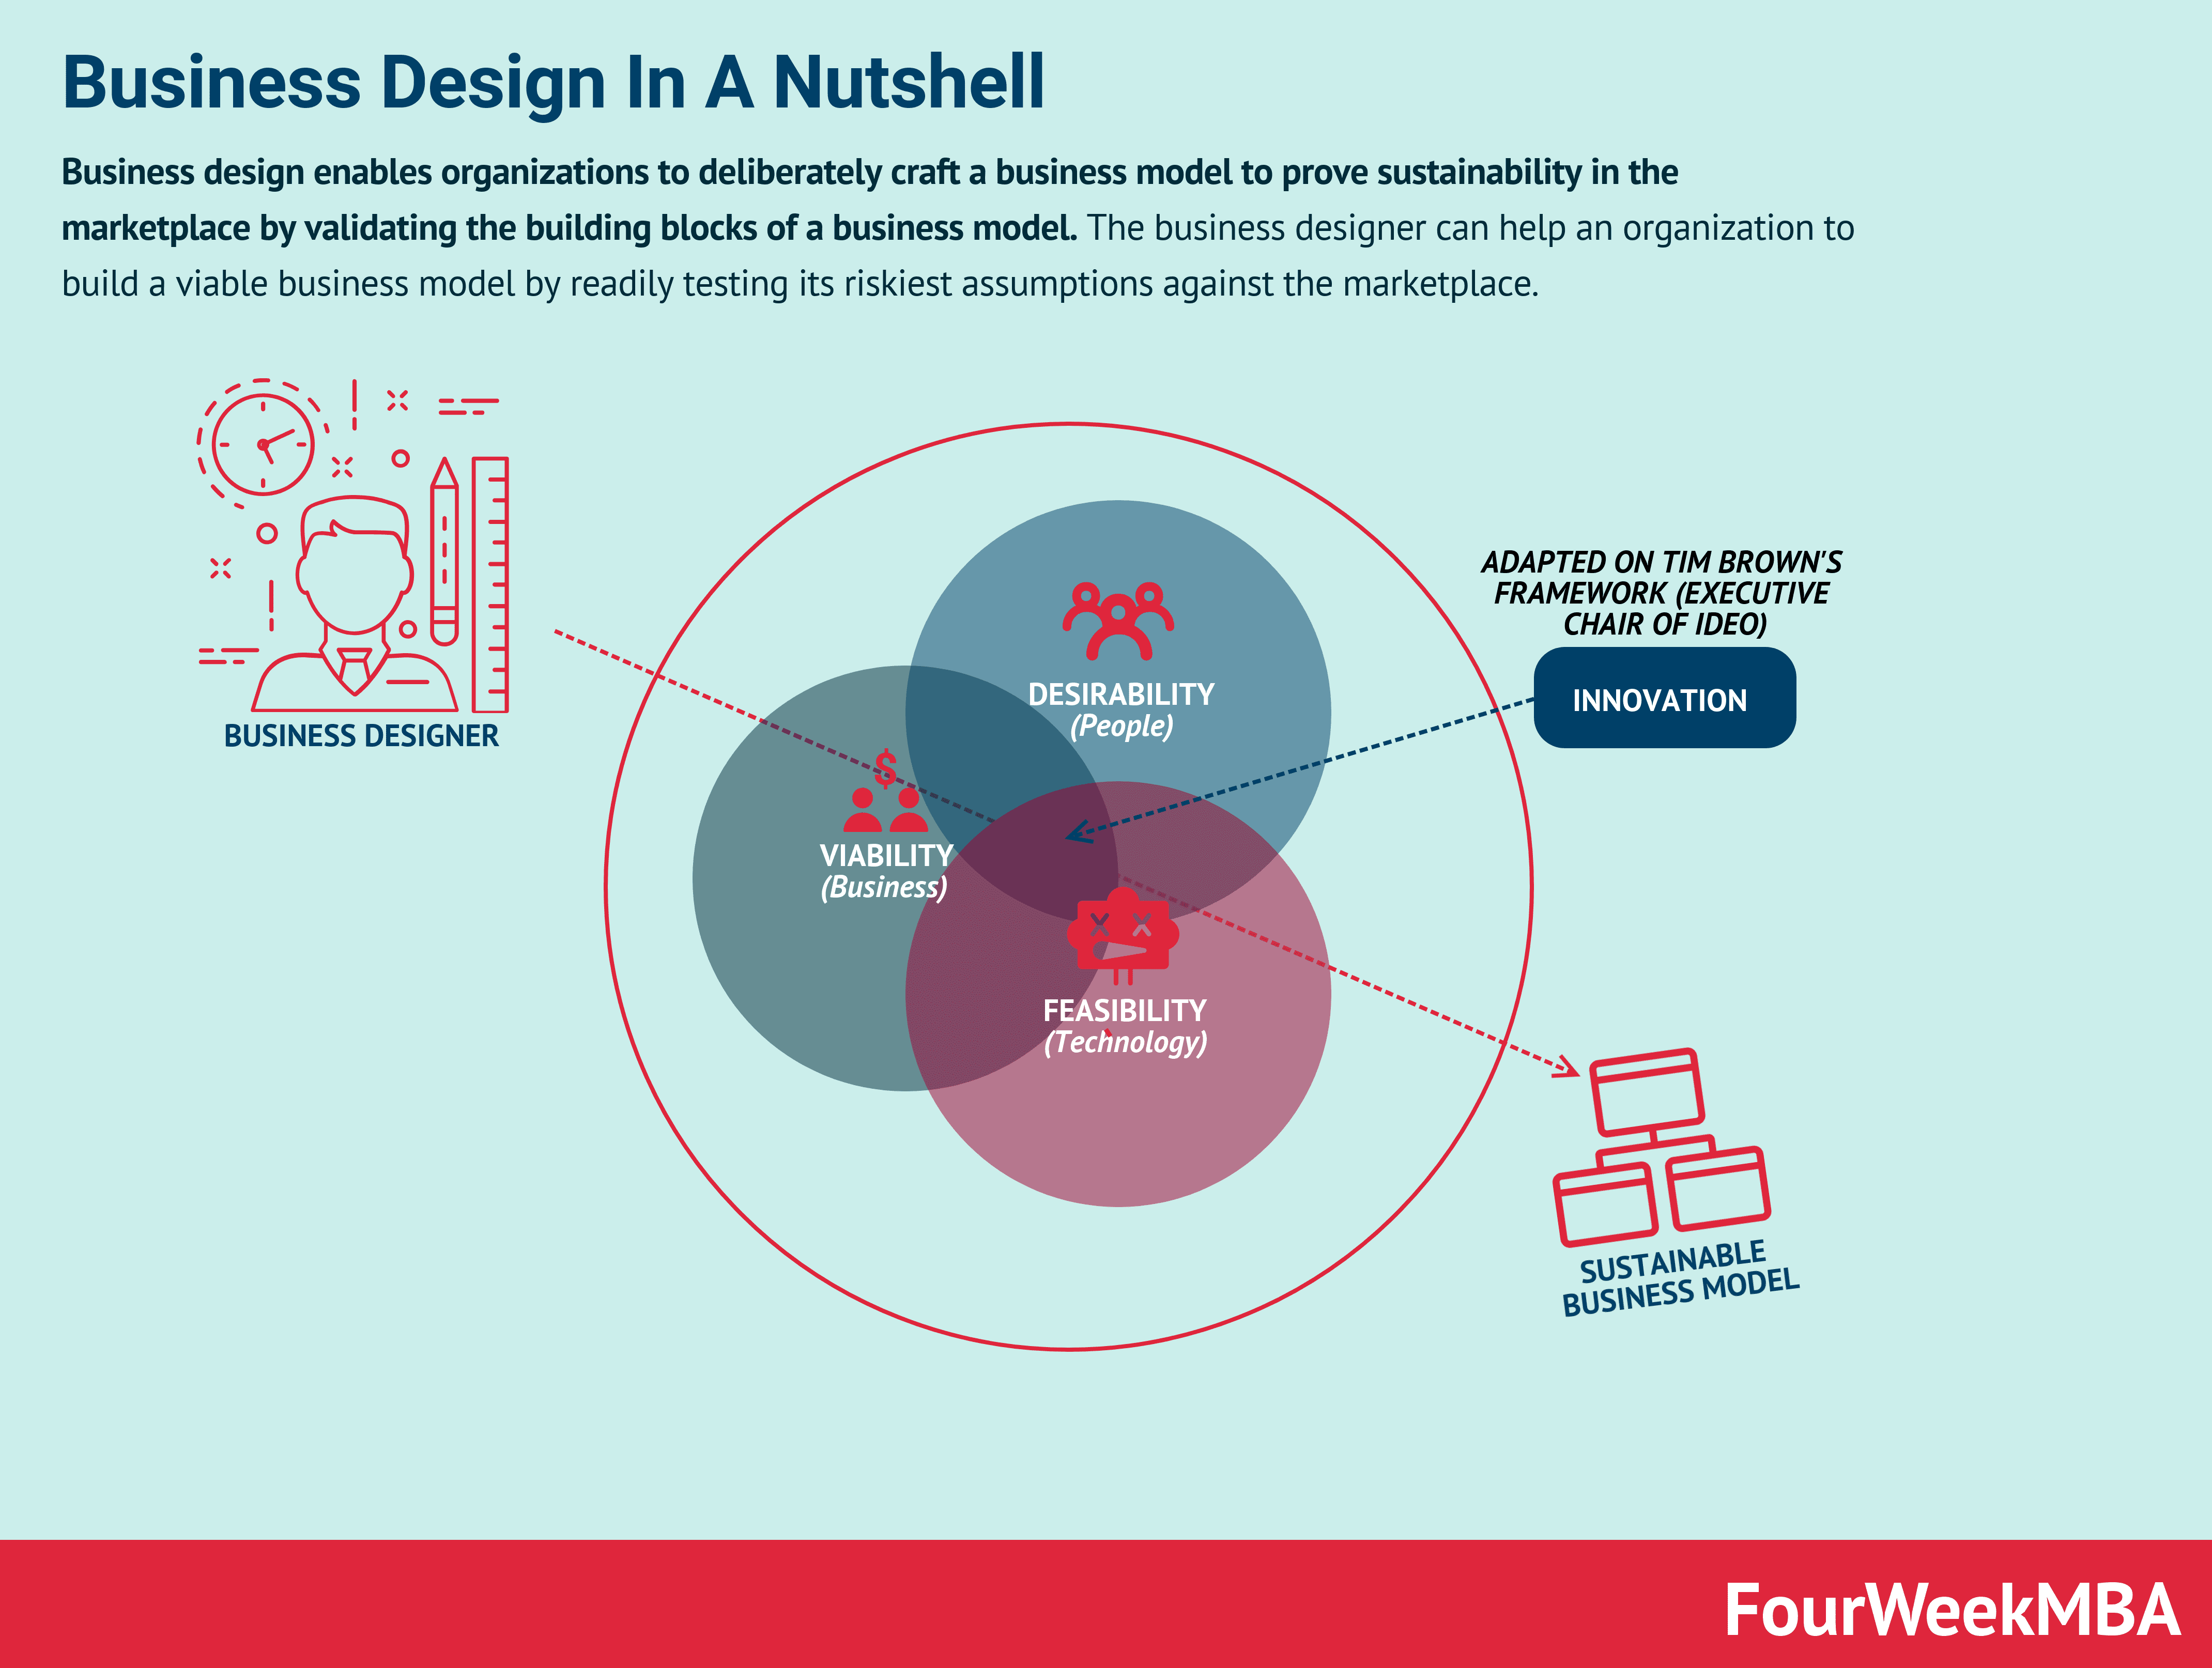 What Is A Business Designer? Business Design In A Nutshell